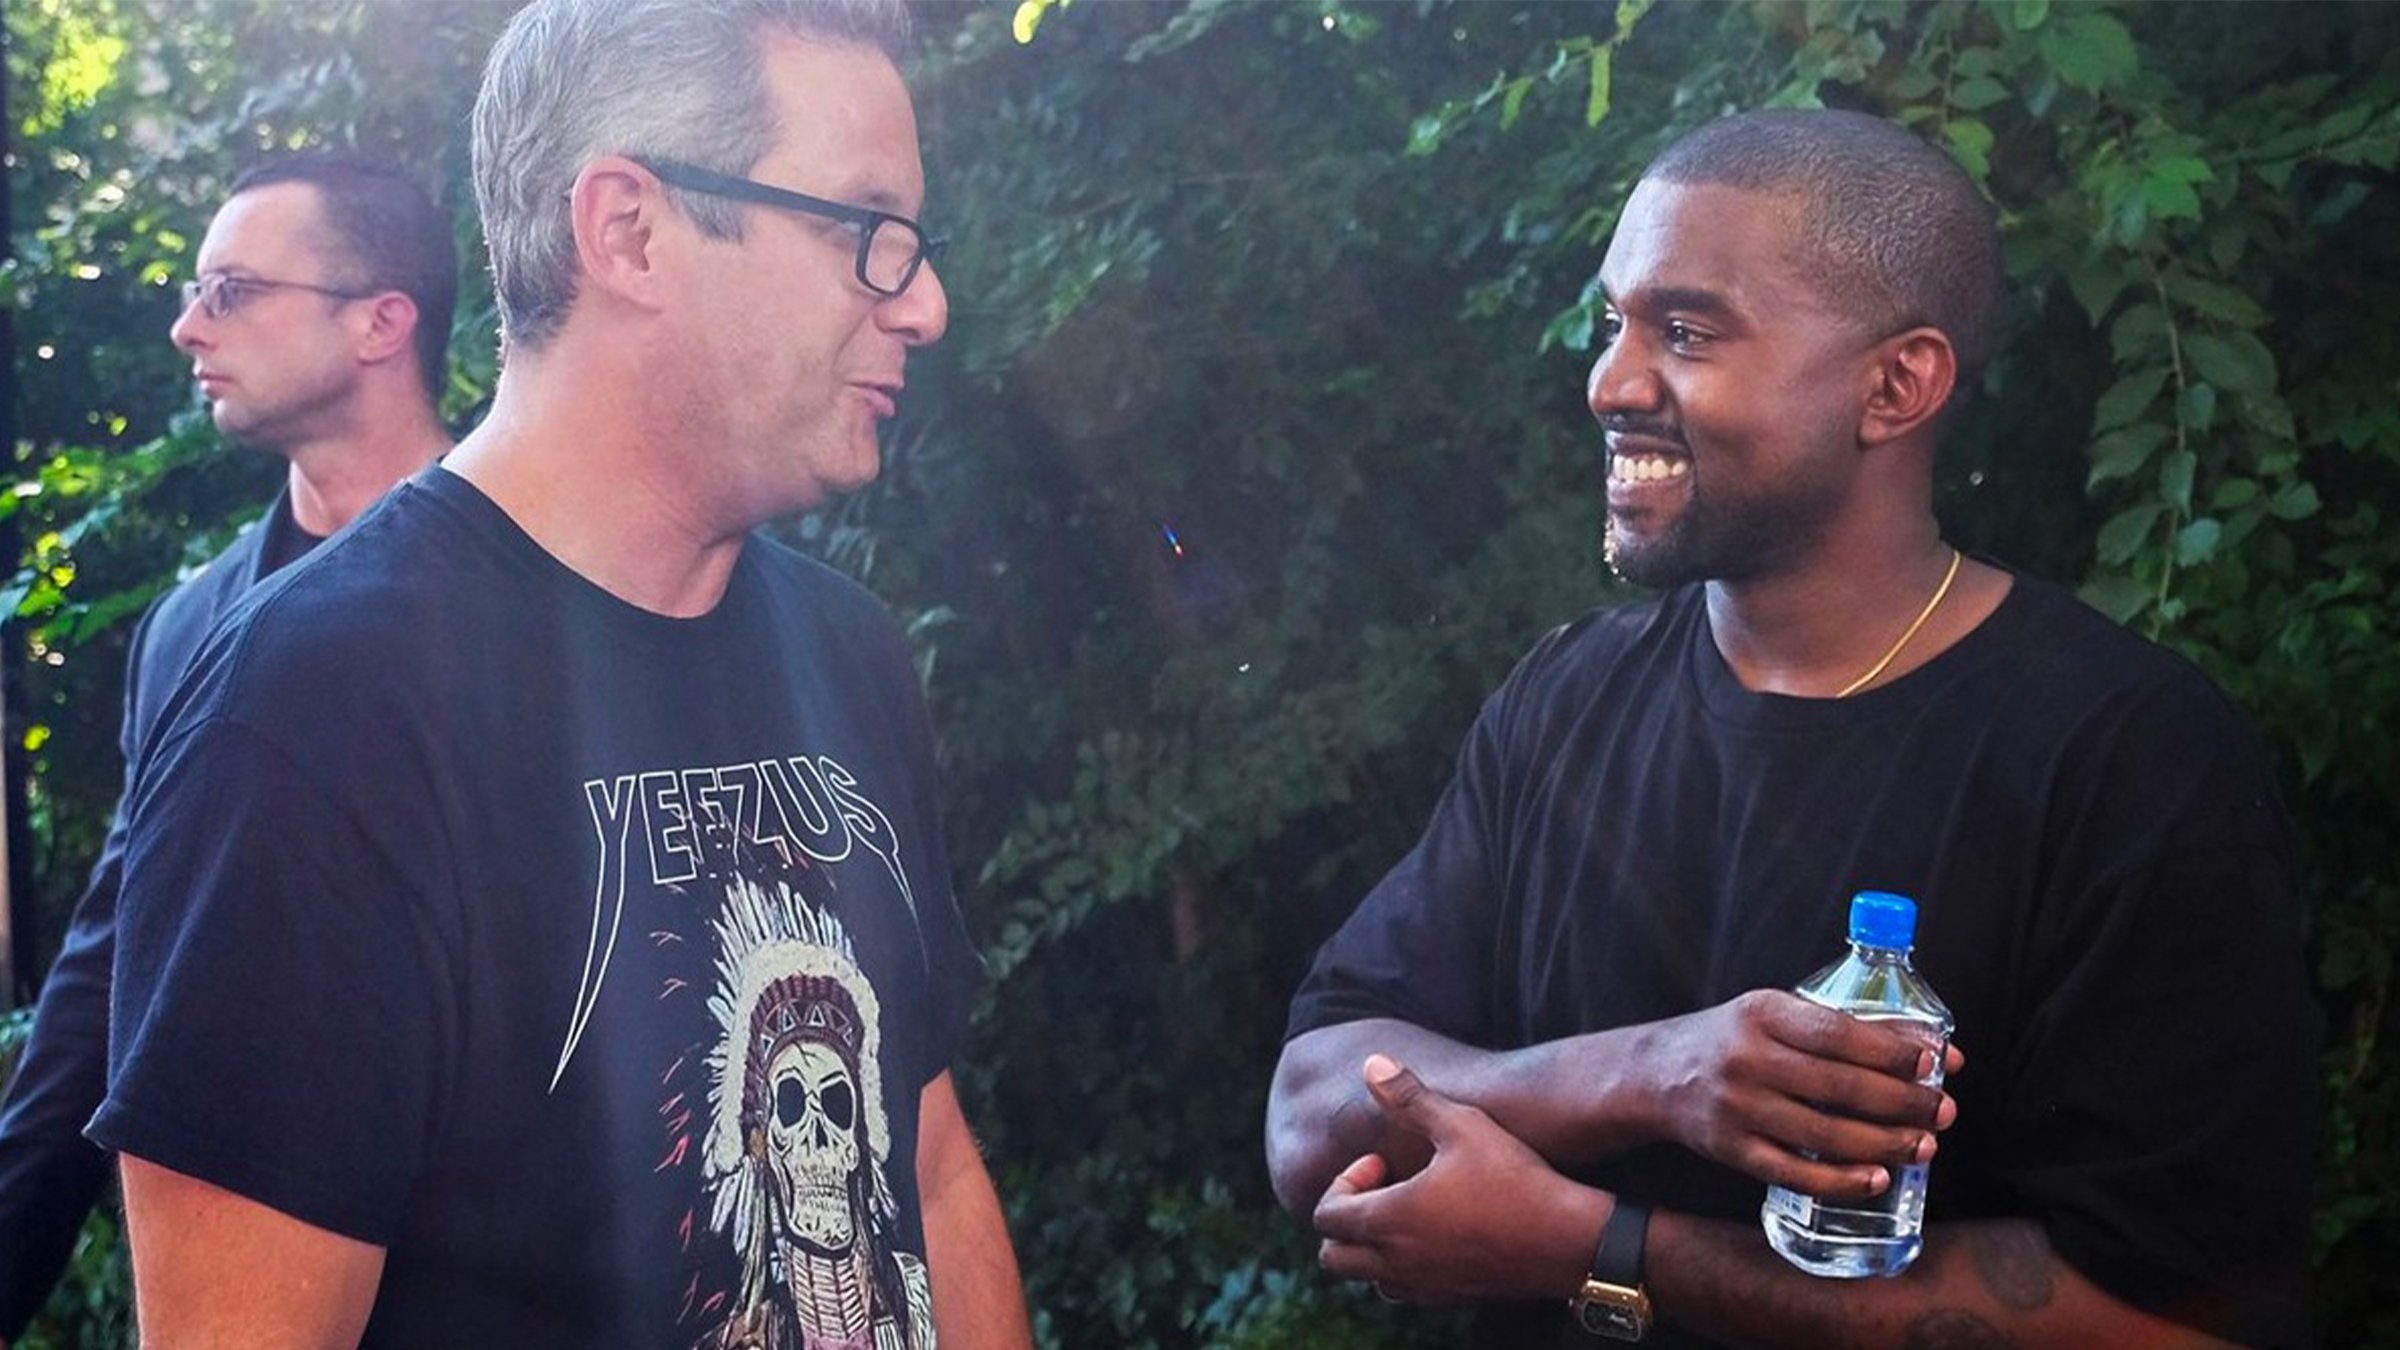 Jon Wexler Opens up About Business Relationship with Kanye West